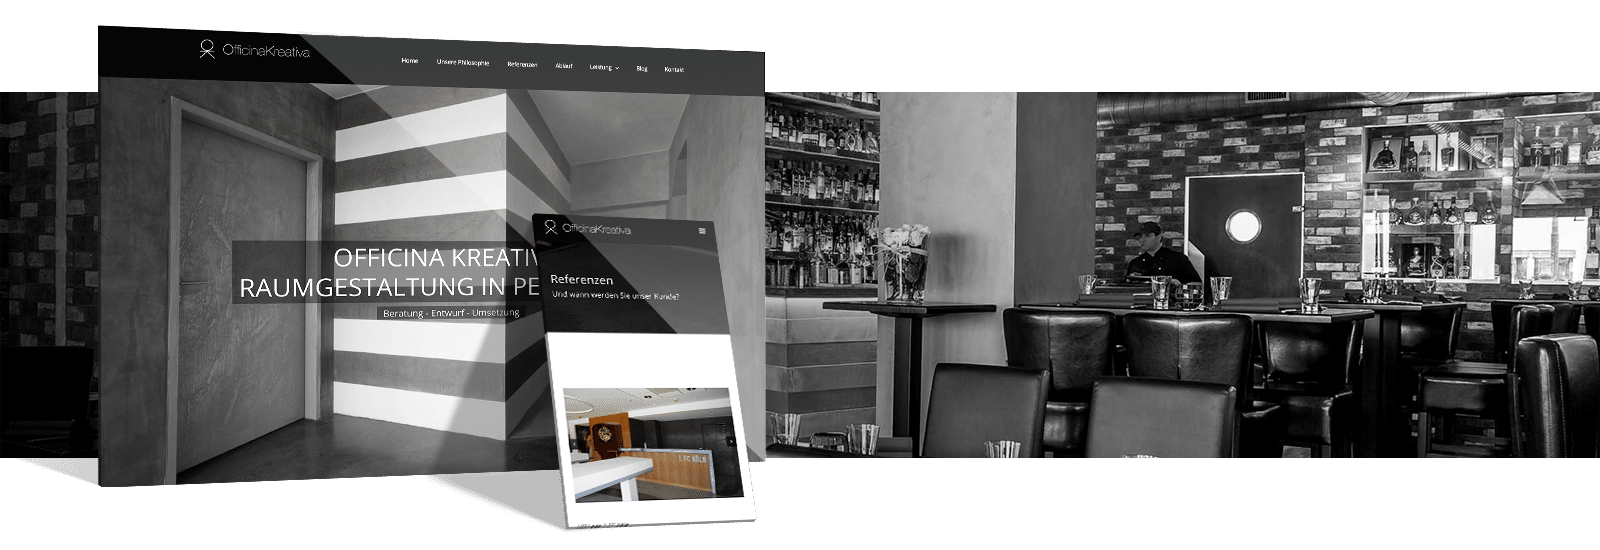 webdesign.koeln Referenz - Officina Kreativa